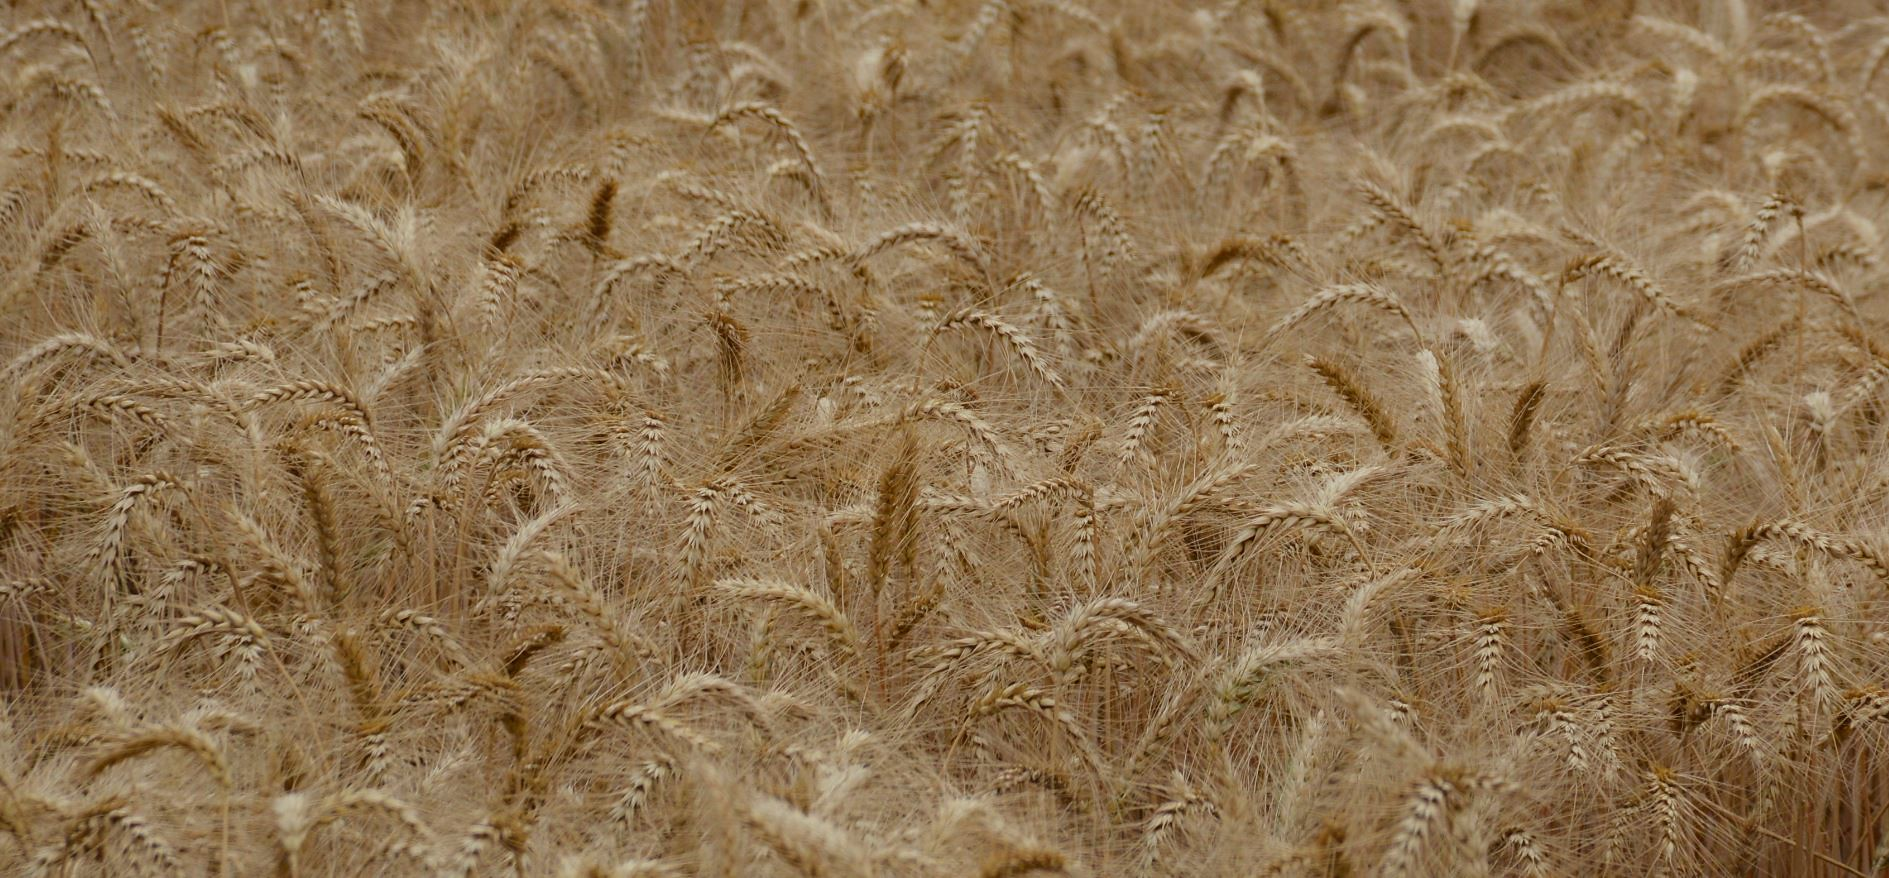 A wheat field in Pakistan, ready for harvest. (Photo: Kashif Syed/CIMMYT)